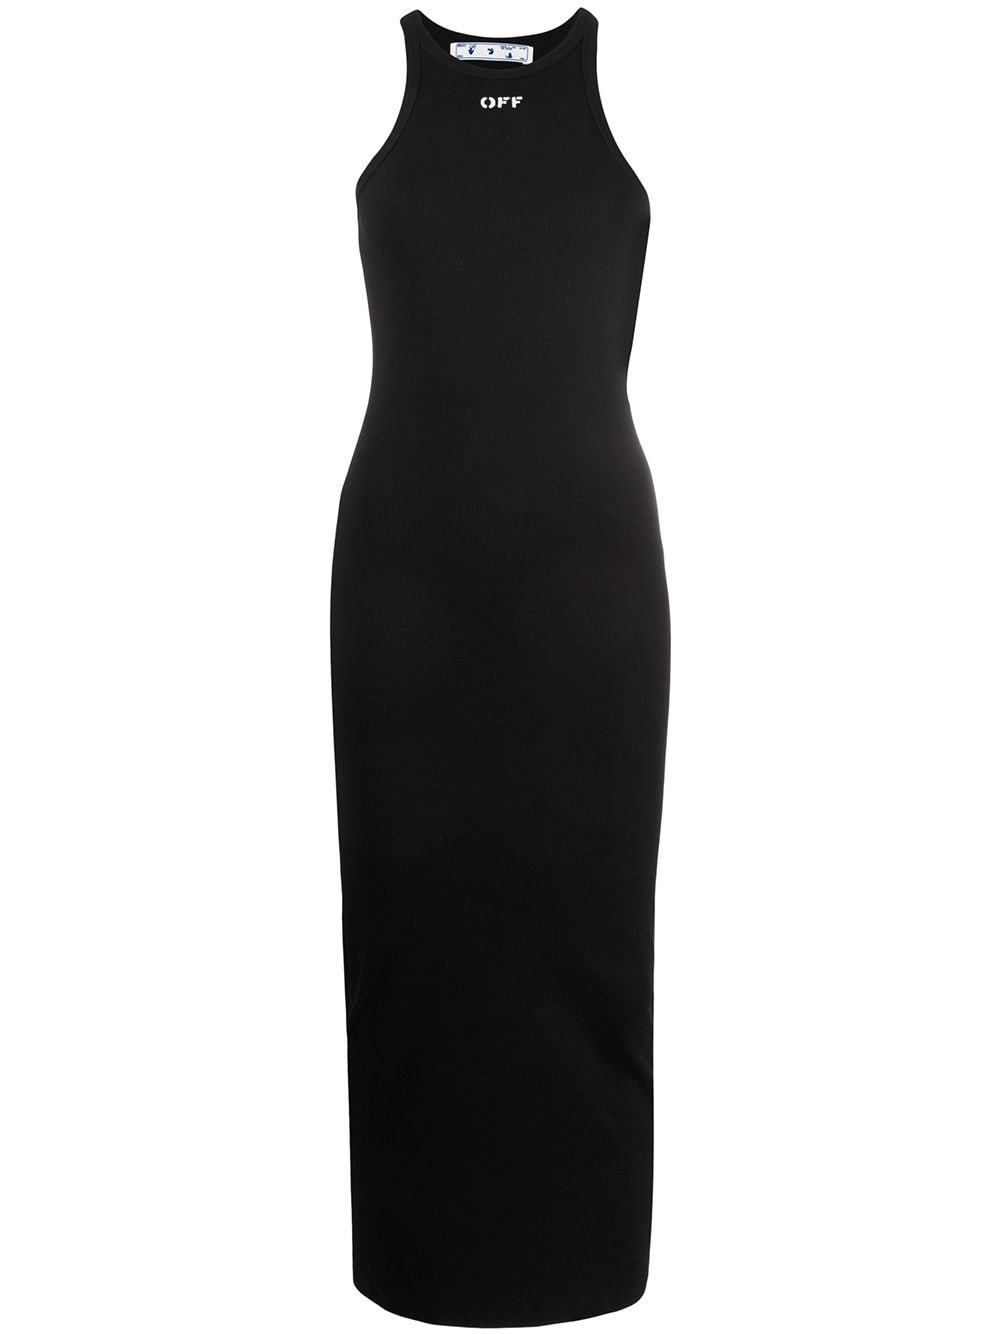 OFF-WHITE WOMEN Basic Ribbed Dress Black